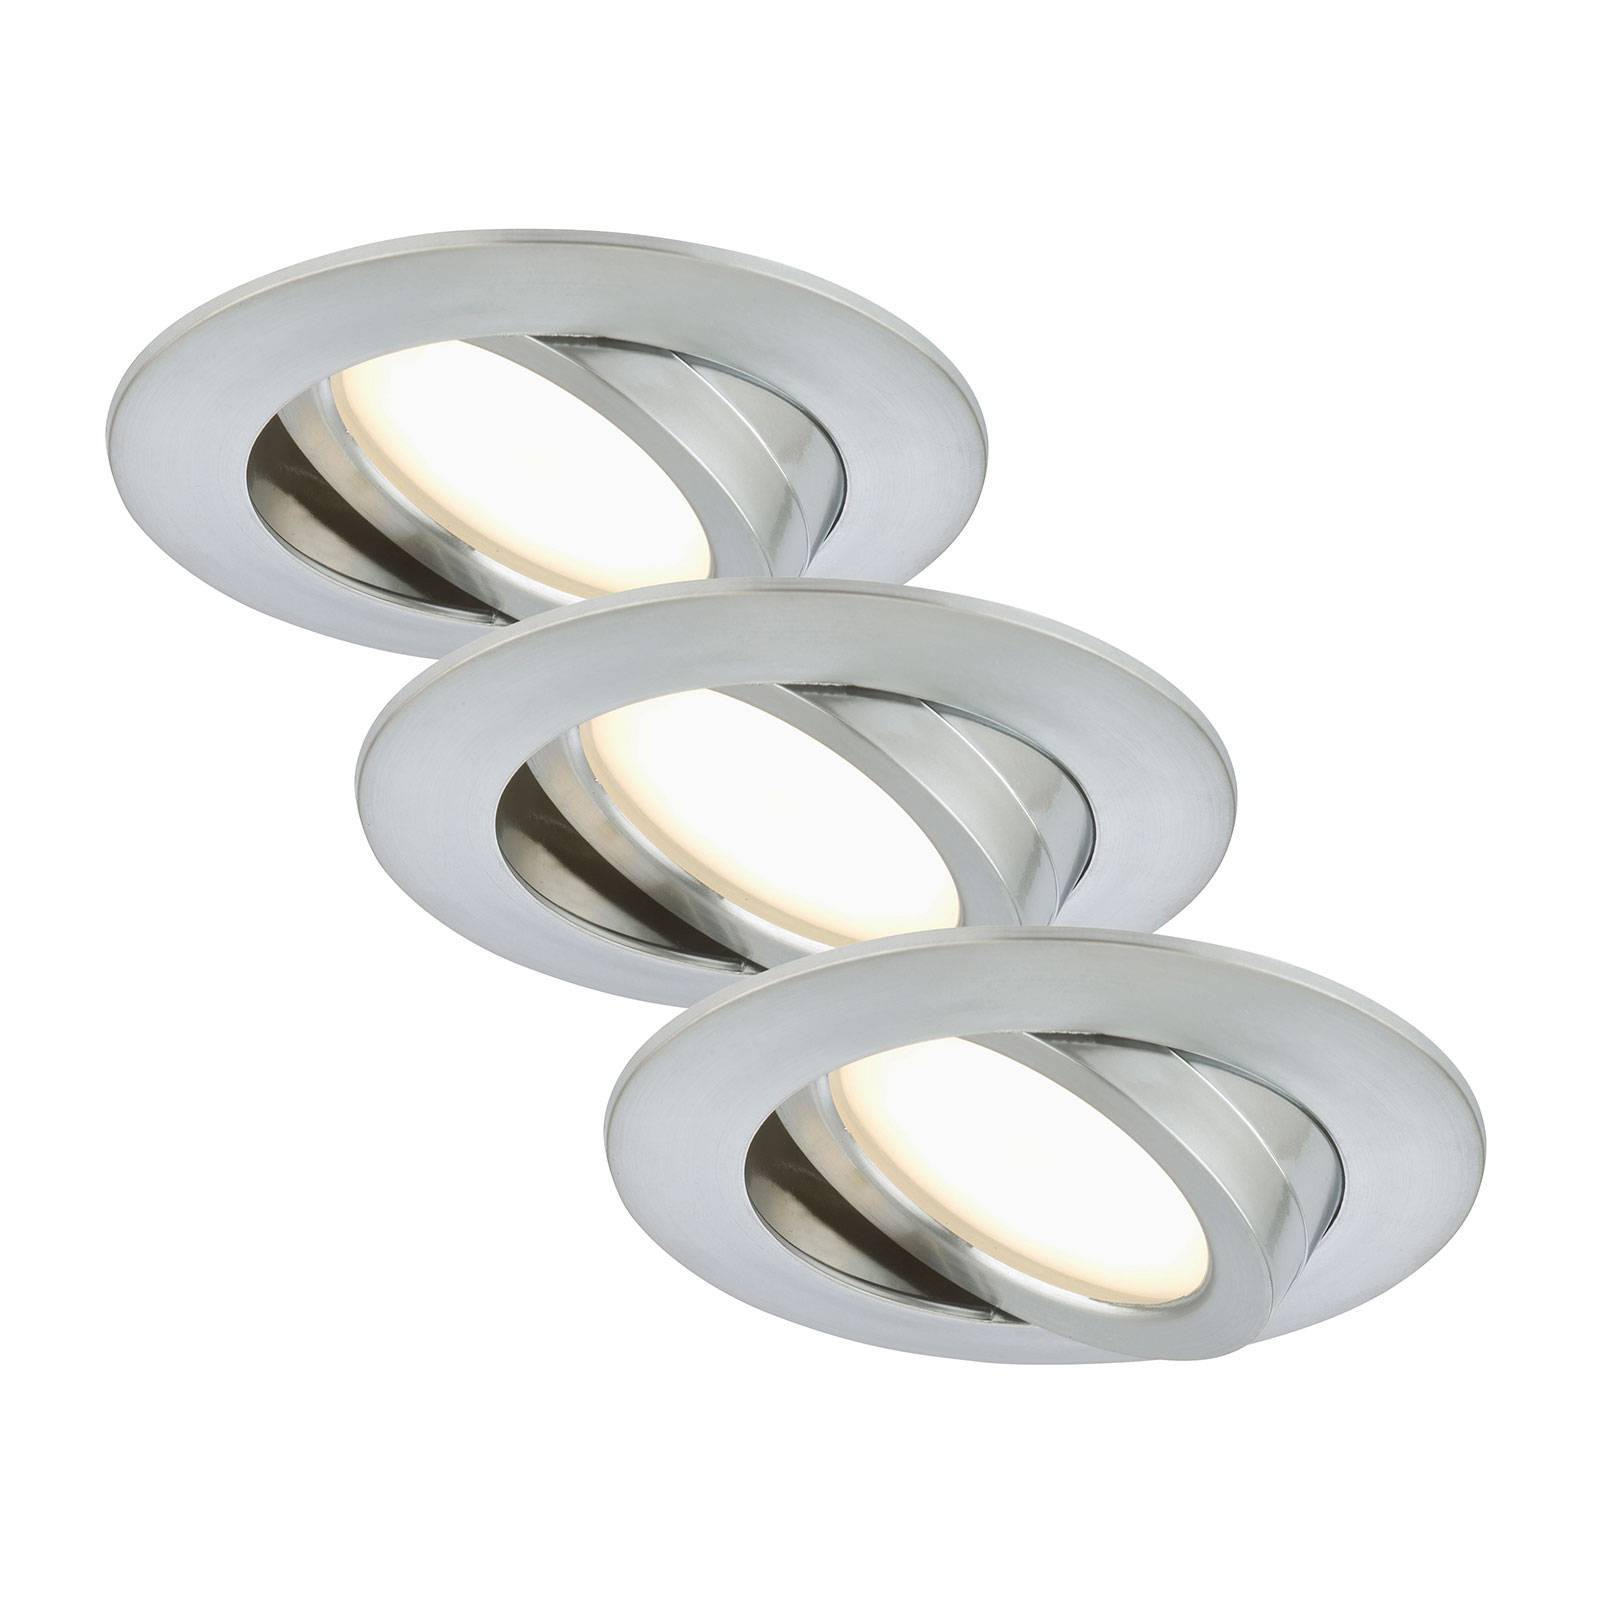 Set of three - LED recessed light Bert, pivotable from Brilonger